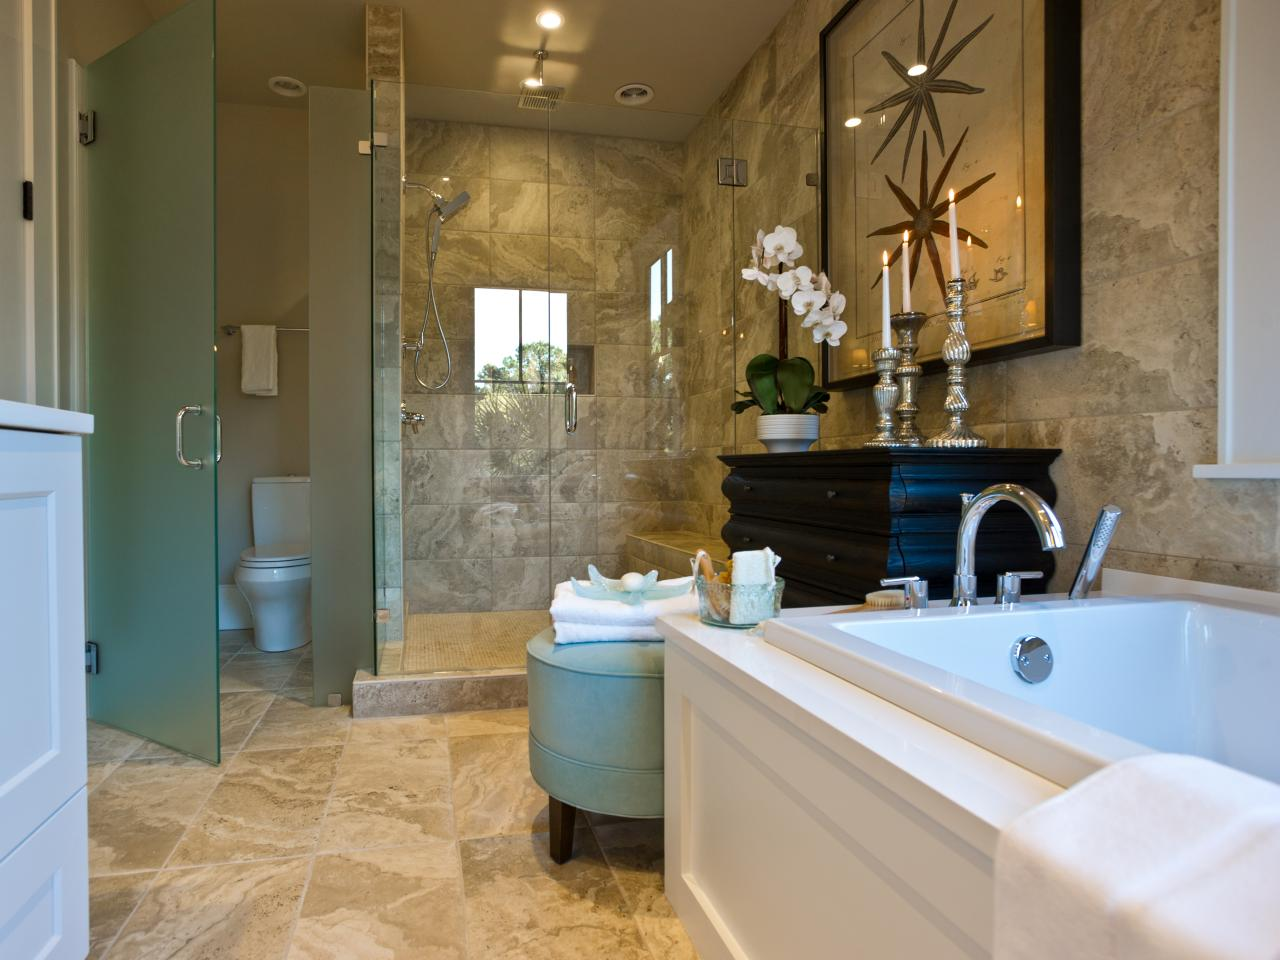 Hgtv dream home 2013 master bathroom pictures and video Master bathroom remodel ideas